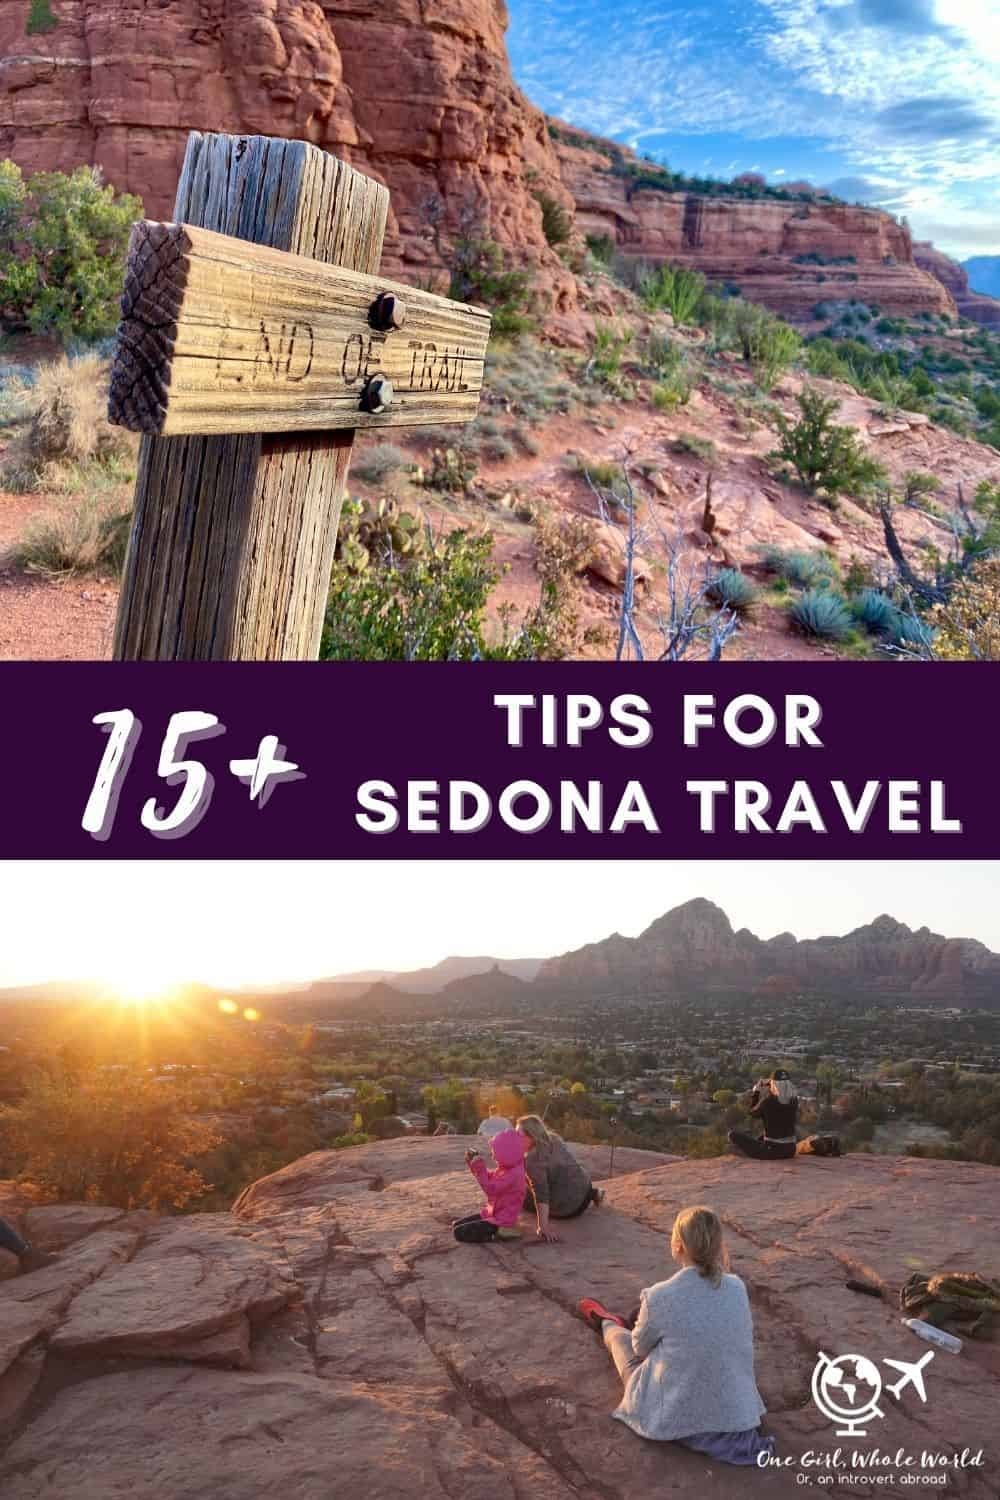 15+ Sedona Travel Tips...Everything You Need for Planning Your Trip to Sedona, Arizona | Sedona is an amazing place to visit, and these tips can help your trip be less stressful & more enjoyable. From driving tips to cell service, staying healthy, restaurant reservations, getting the best photo lighting, & so much more. #sedona #arizona #traveltips